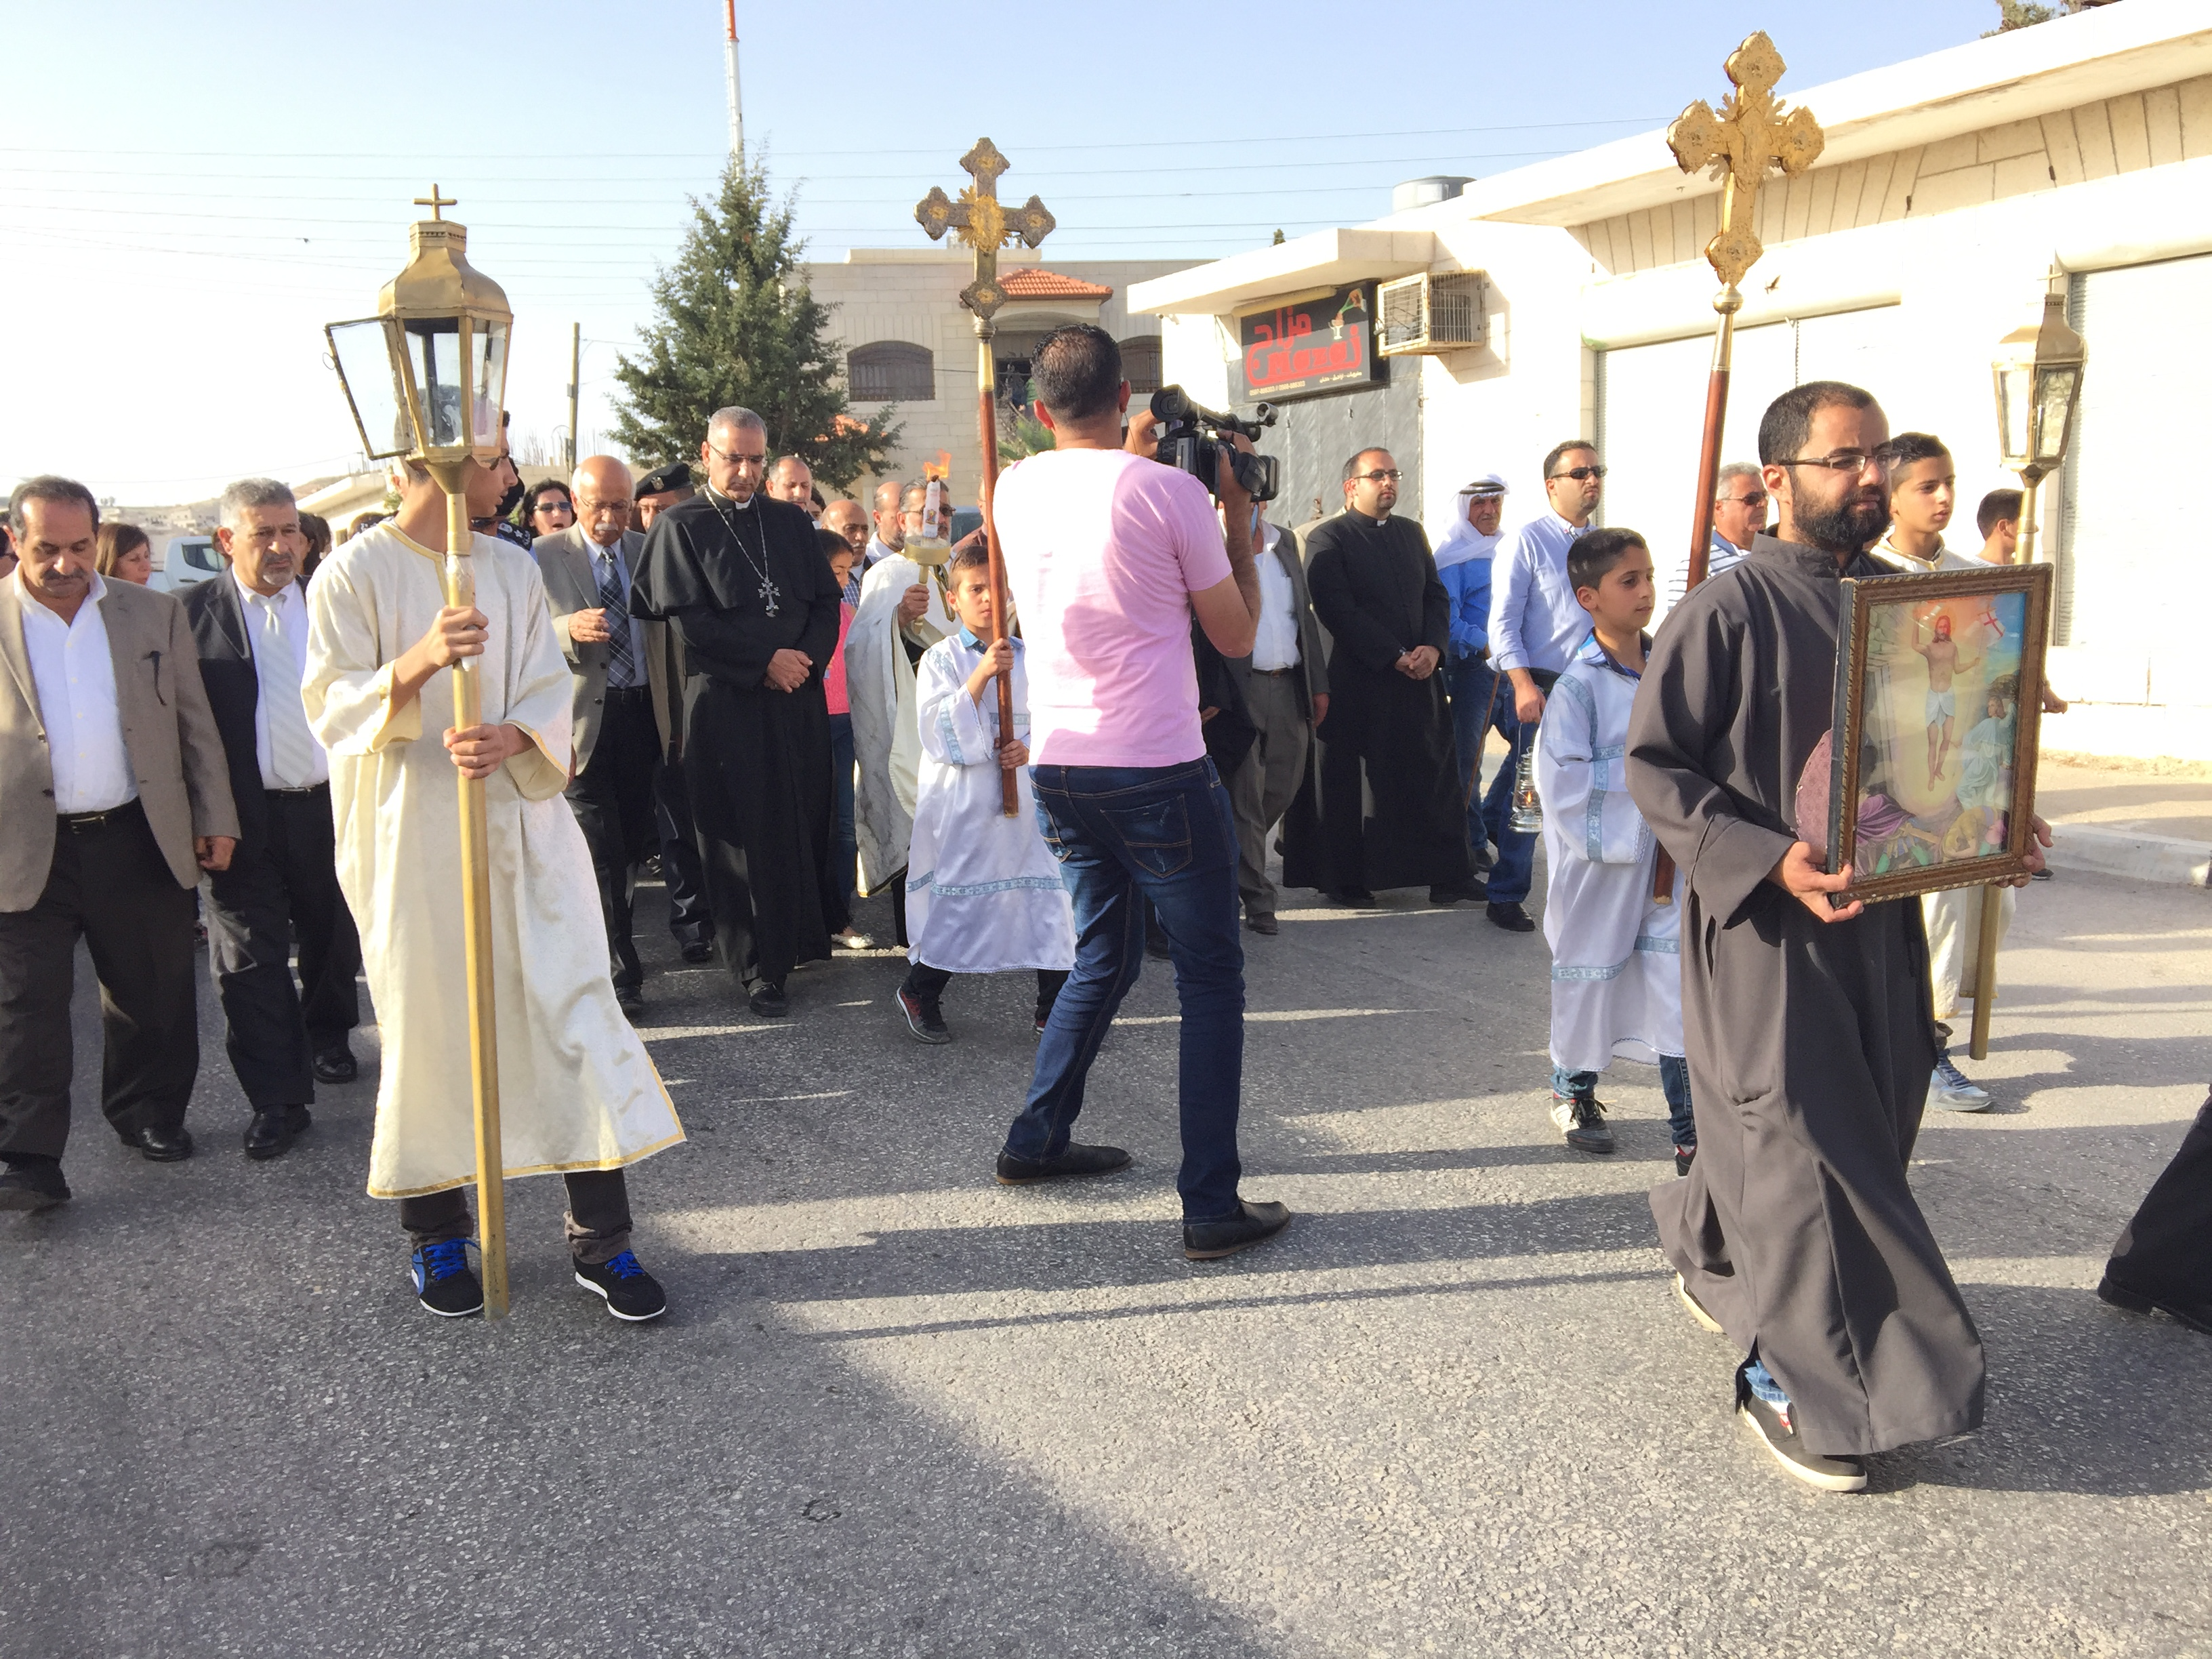 Christians in Taybeh, Palestine celebrate the religious Tradition of the Holy Fire. Photos courtesy of Maria C. Khoury